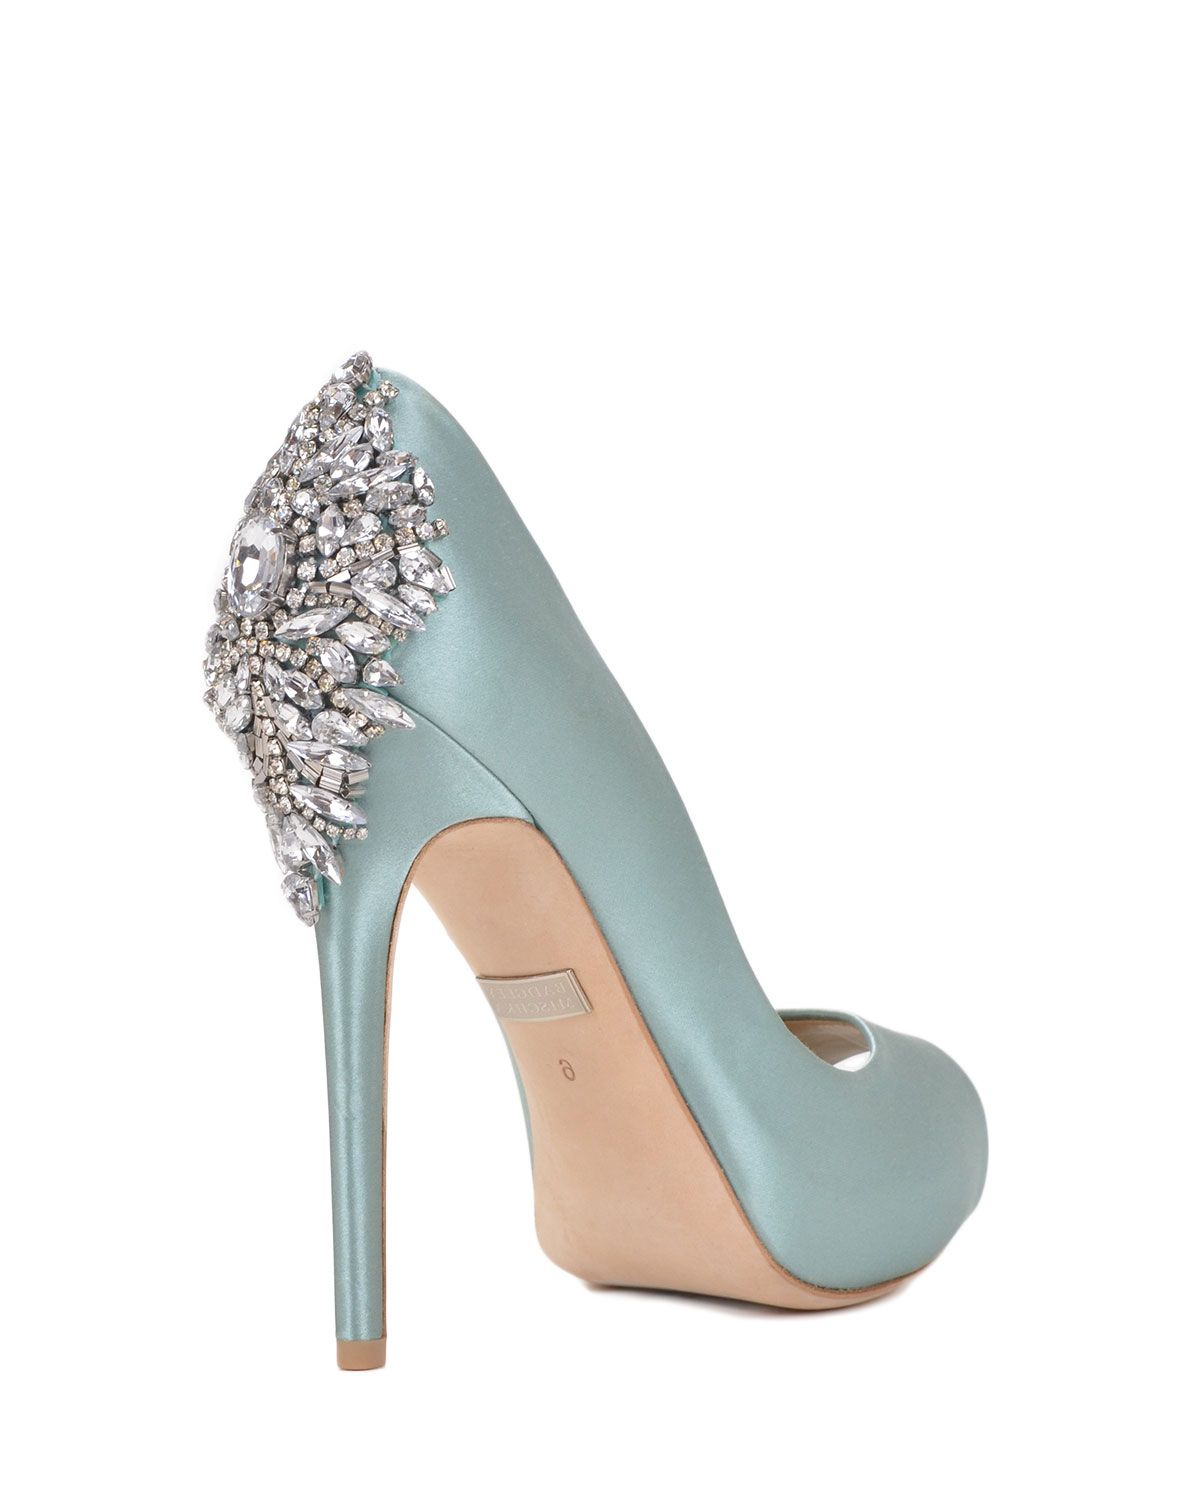 Kiara evening shoes by Badgley Mischka, now available at the ...